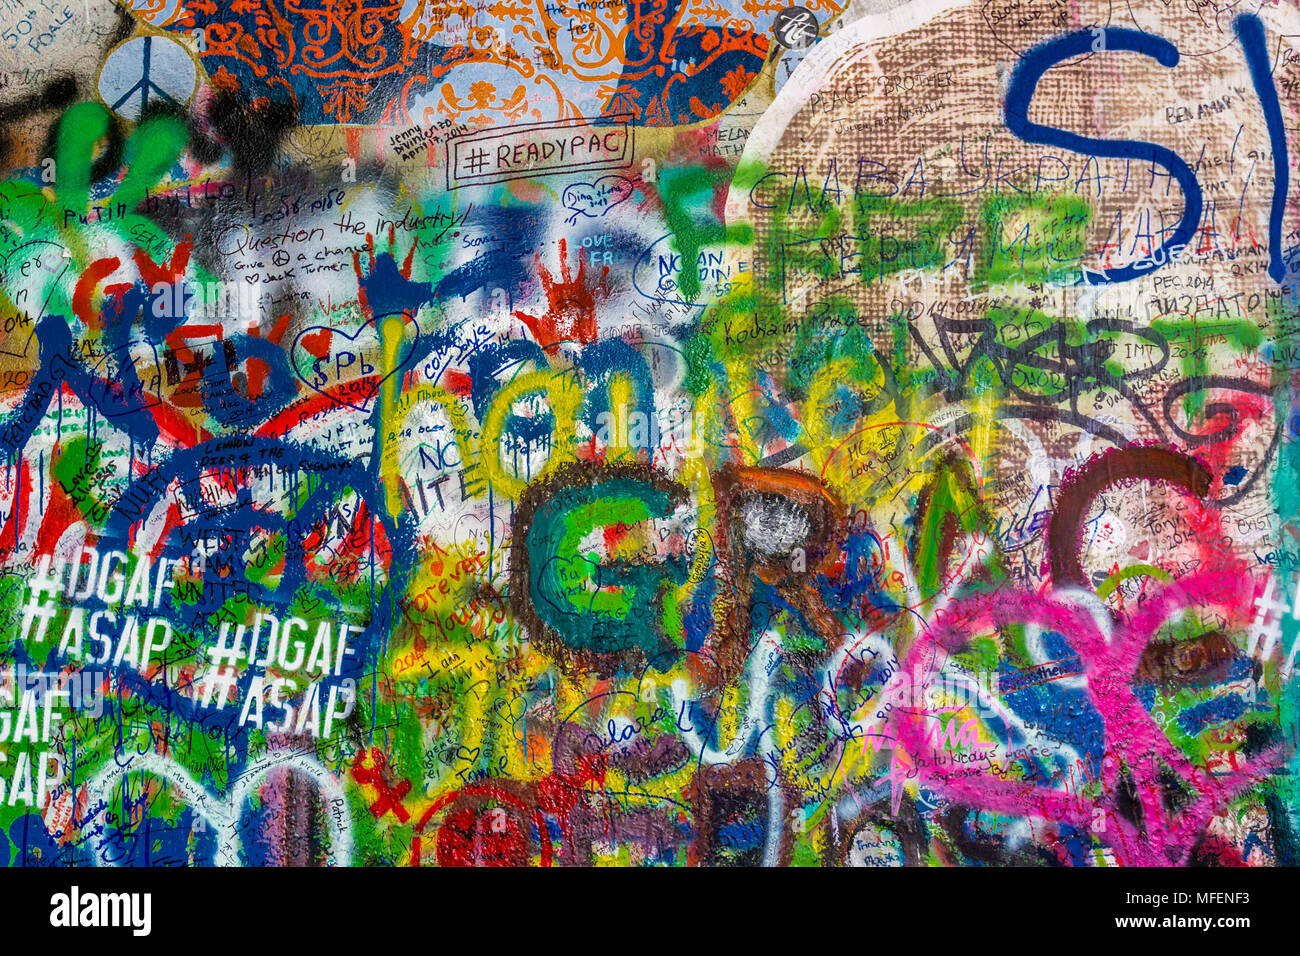 Prague czech august 28 2014 the lennon wall is a symbol for young people who keeps on drawing graffiti inspired by john lennon and beatles lyrics